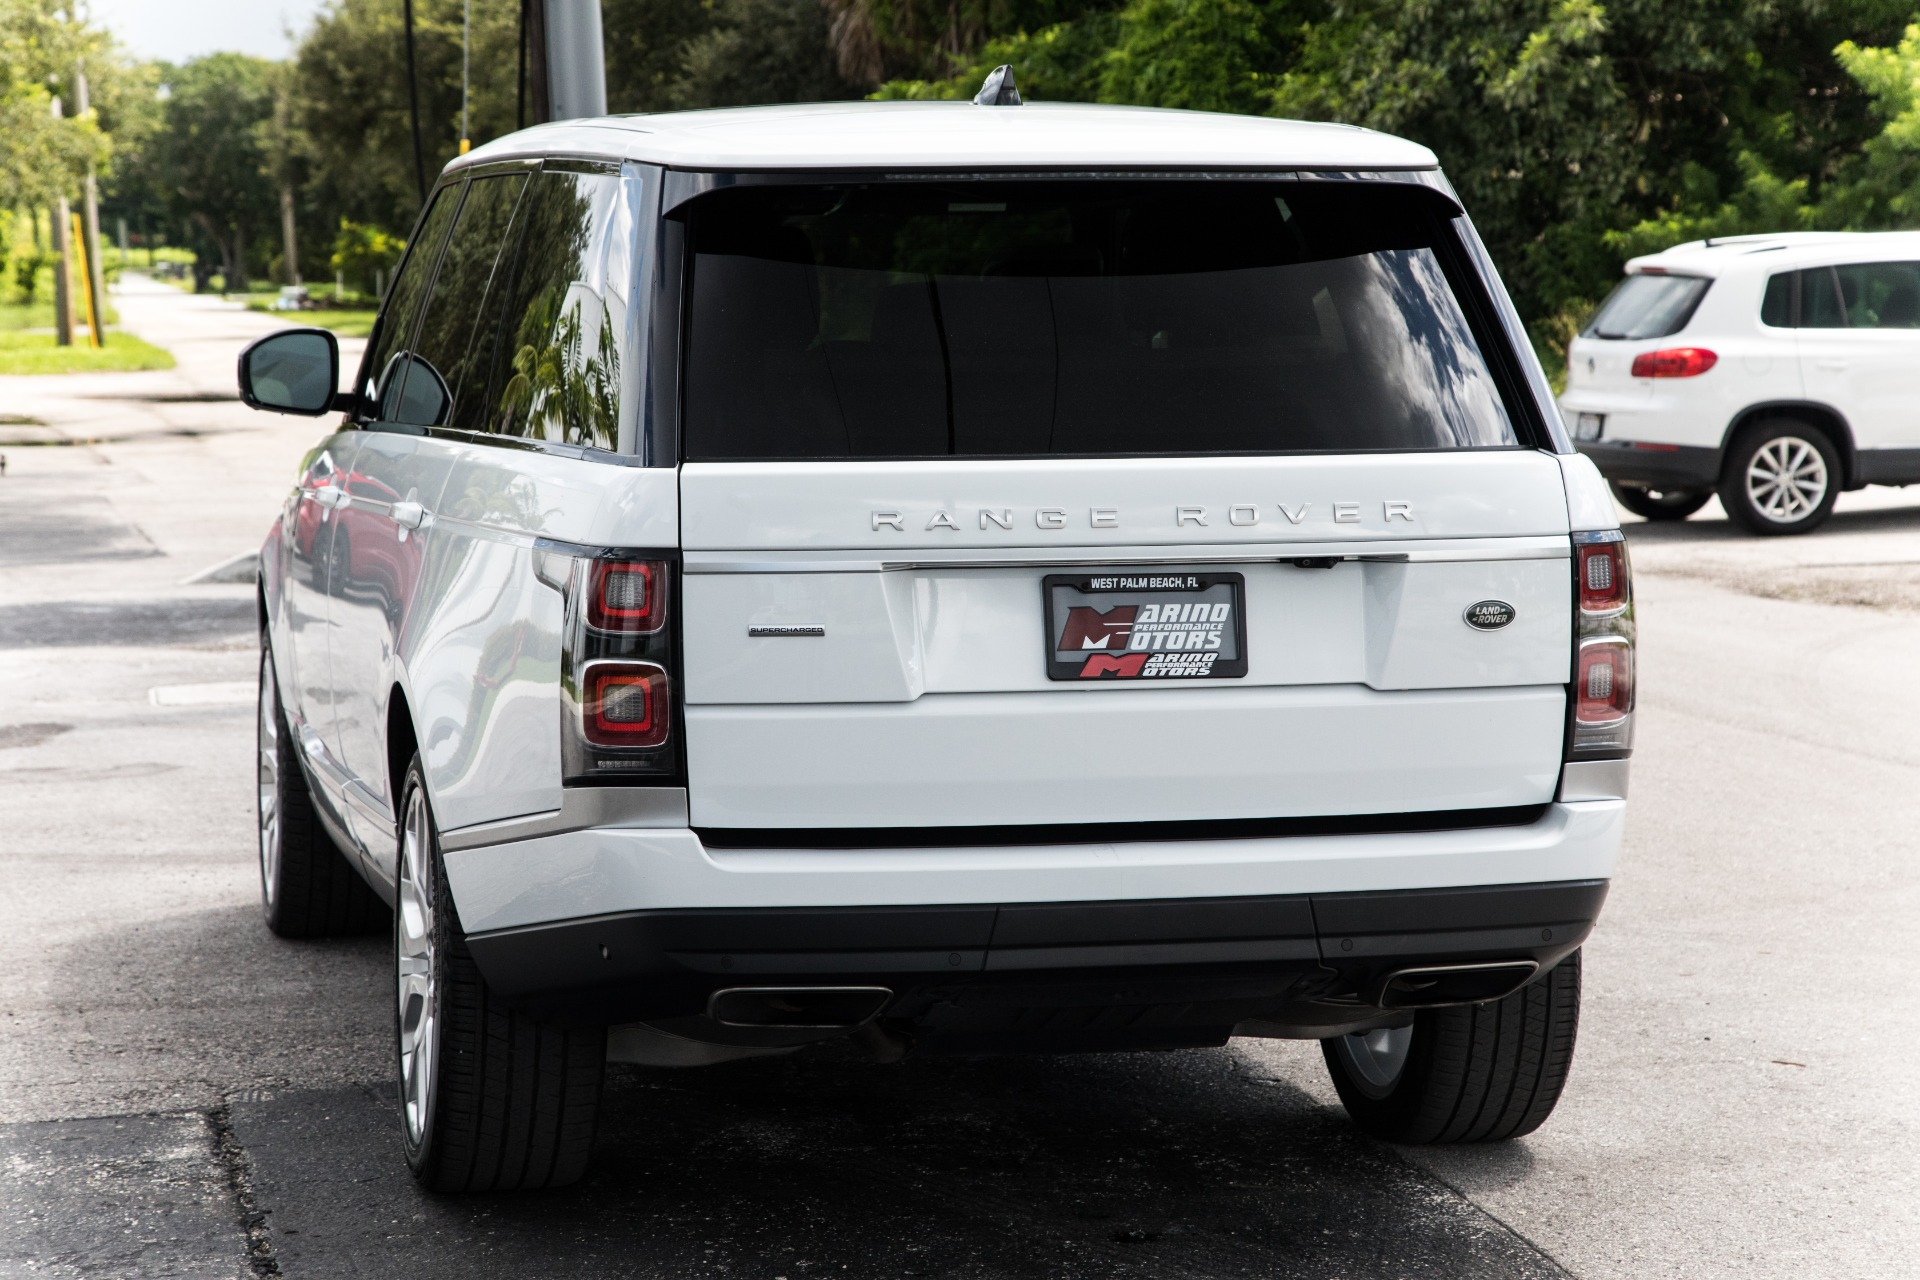 Used-2018-Land-Rover-Range-Rover-Supercharged-LWB